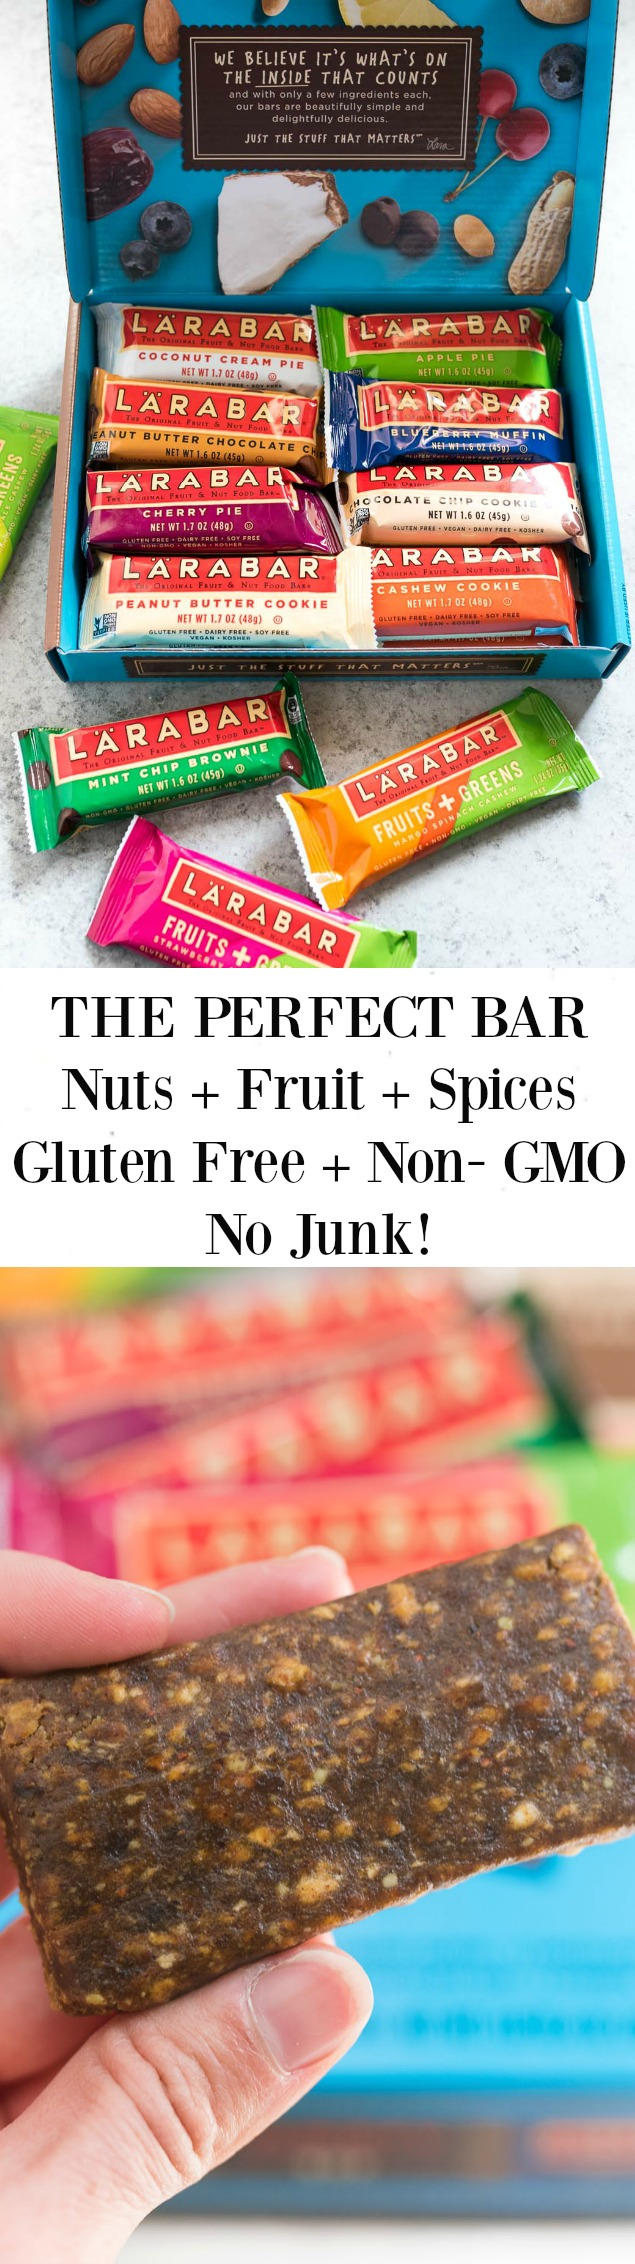 The perfect fruit and nut bar to stock up on- #glutenfree and many #paleo and #whole30 compliant choices. Real food in a snack bar form! 25% off HERE http://amzn.to/2iB9mEK through Feb. 14th! #sponsored